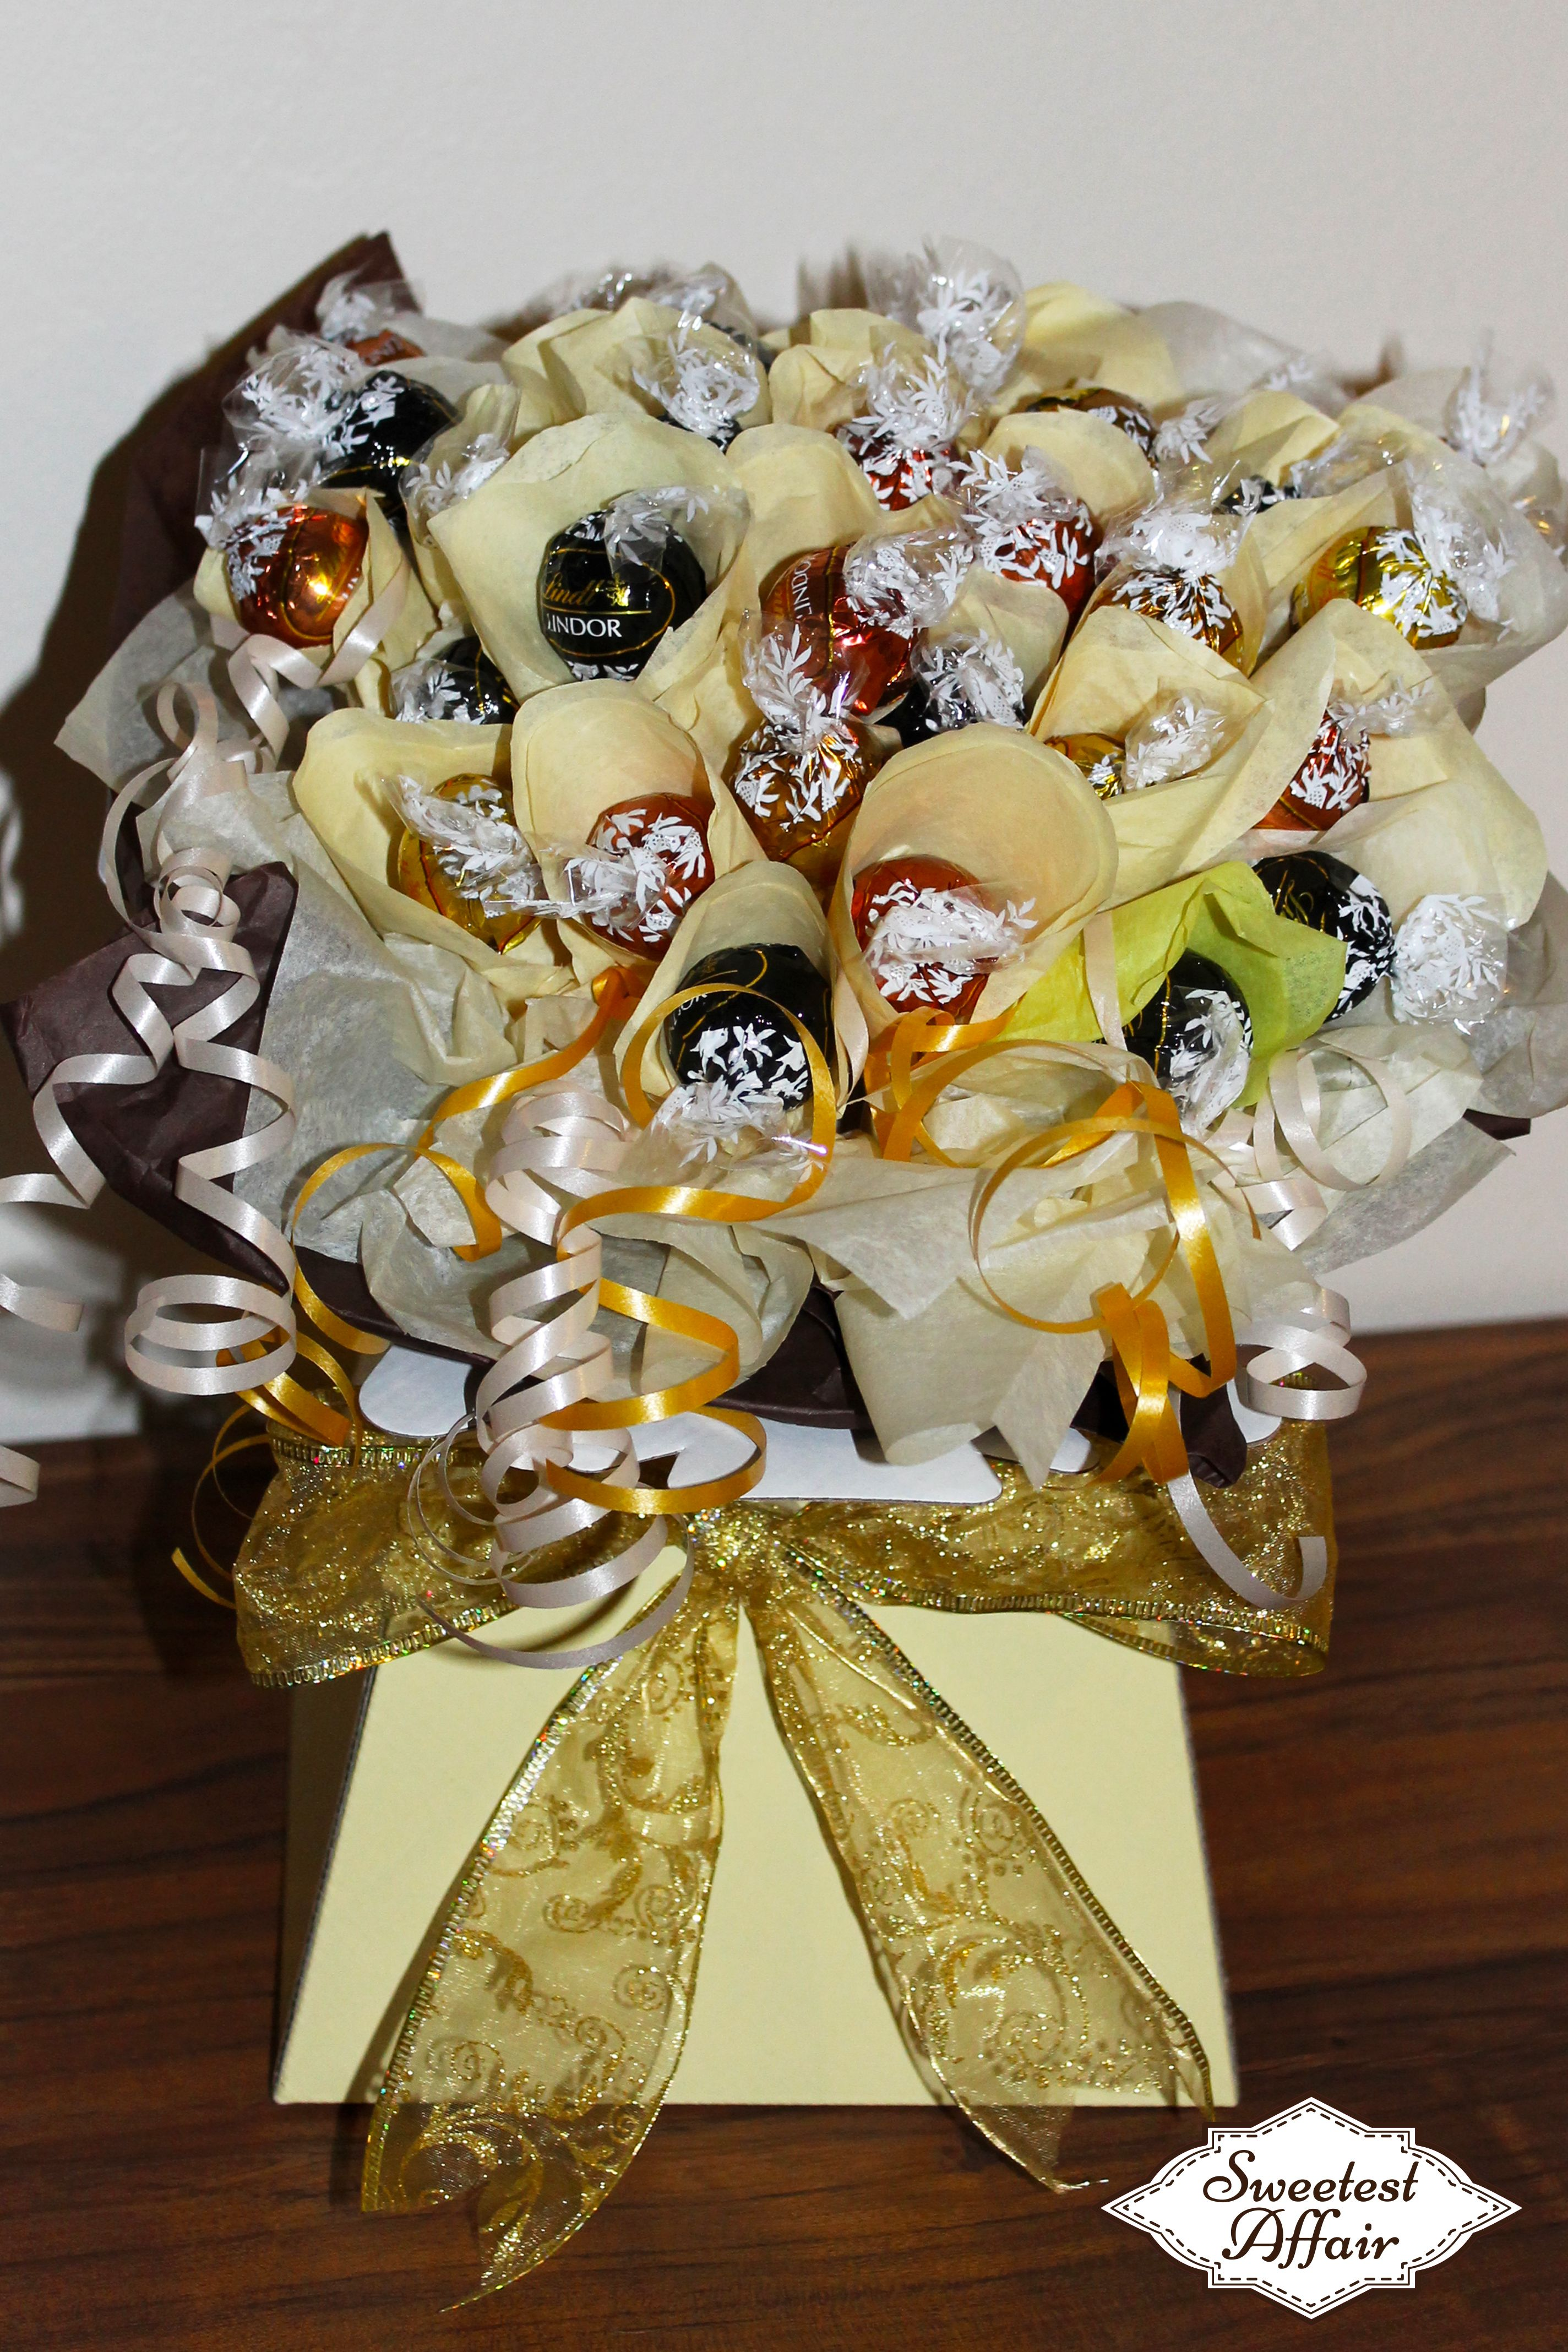 Lindt lindor chocolate truffle sweet bouquet httpebay lindt lindor chocolate truffle sweet bouquet httpebay izmirmasajfo Gallery